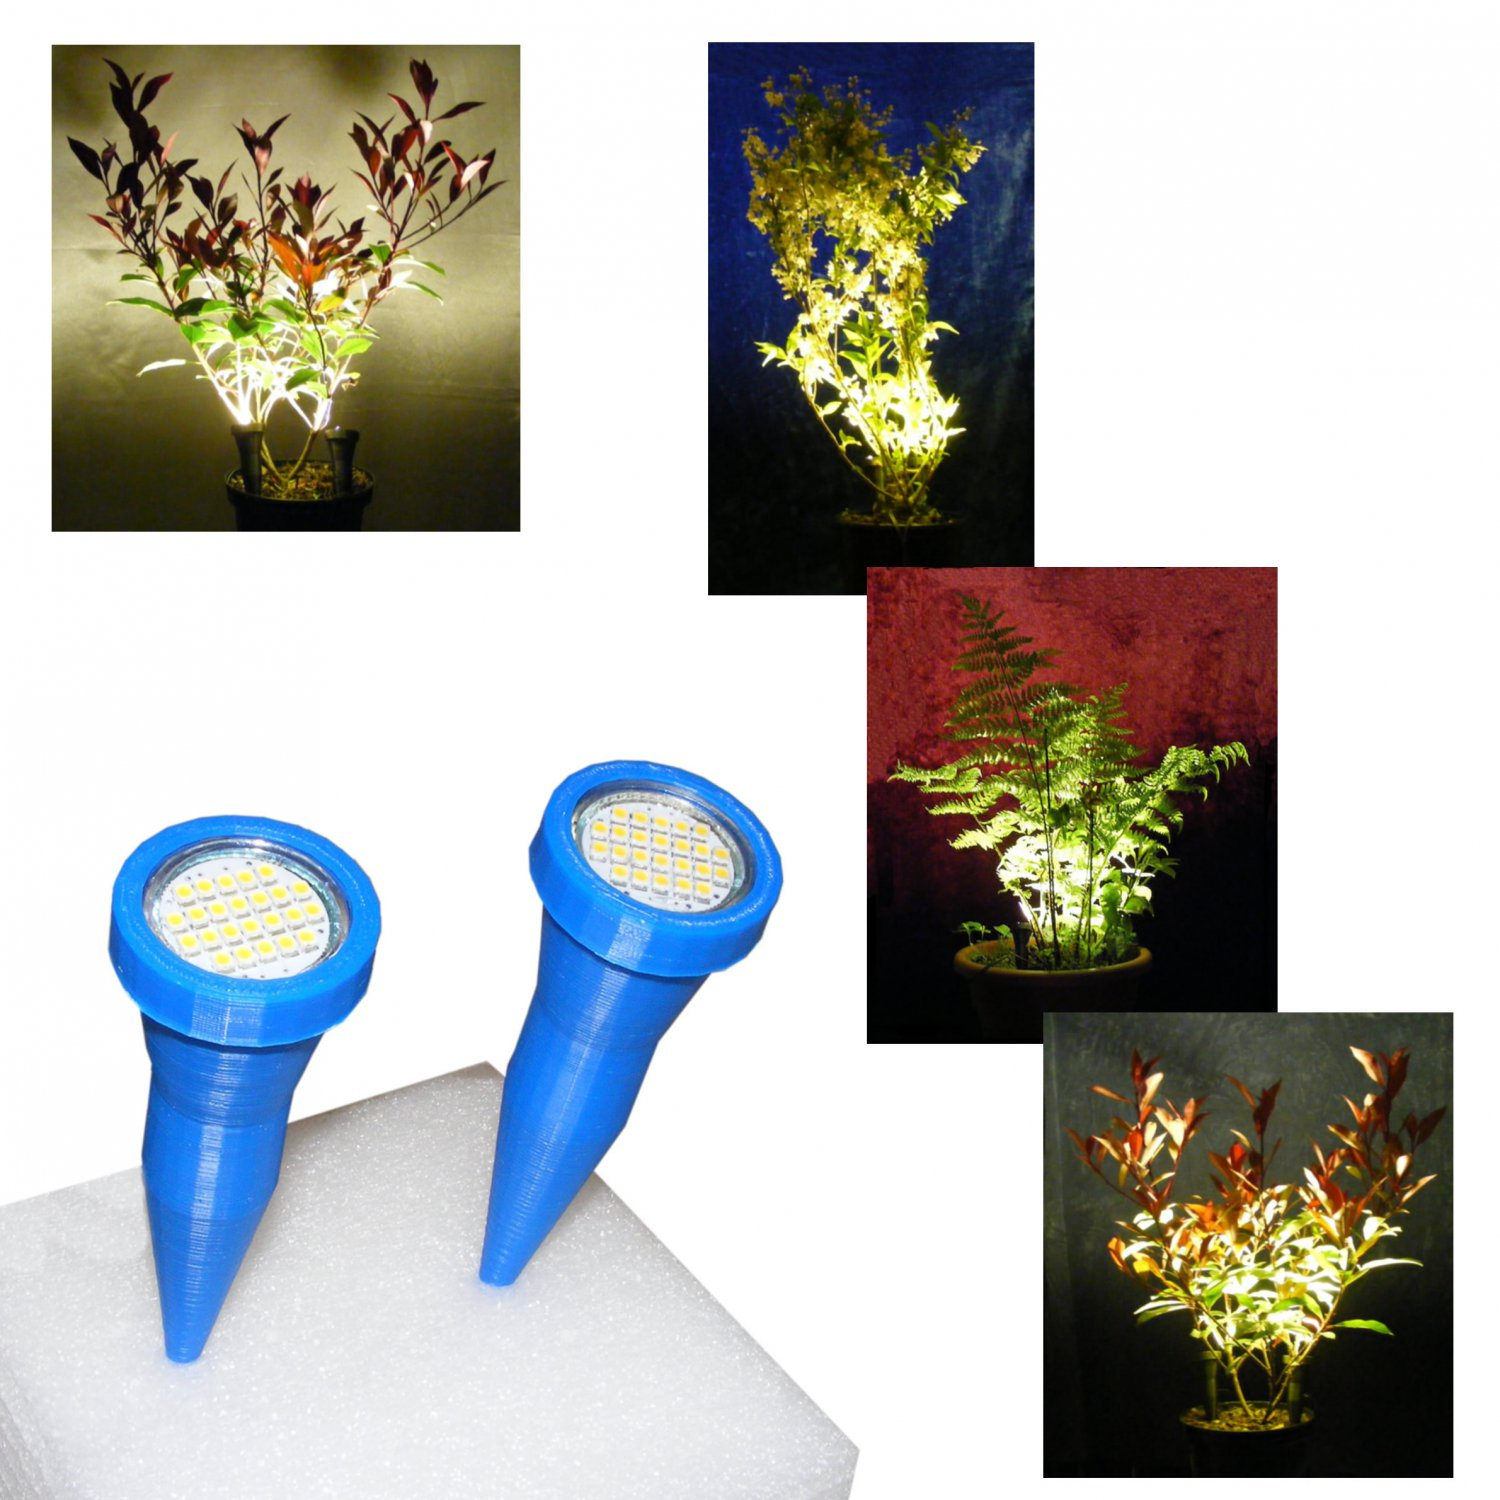 Pair of Blue Plant Pot Uplighters / Plant Pot Spike Lights with Mains Adapter